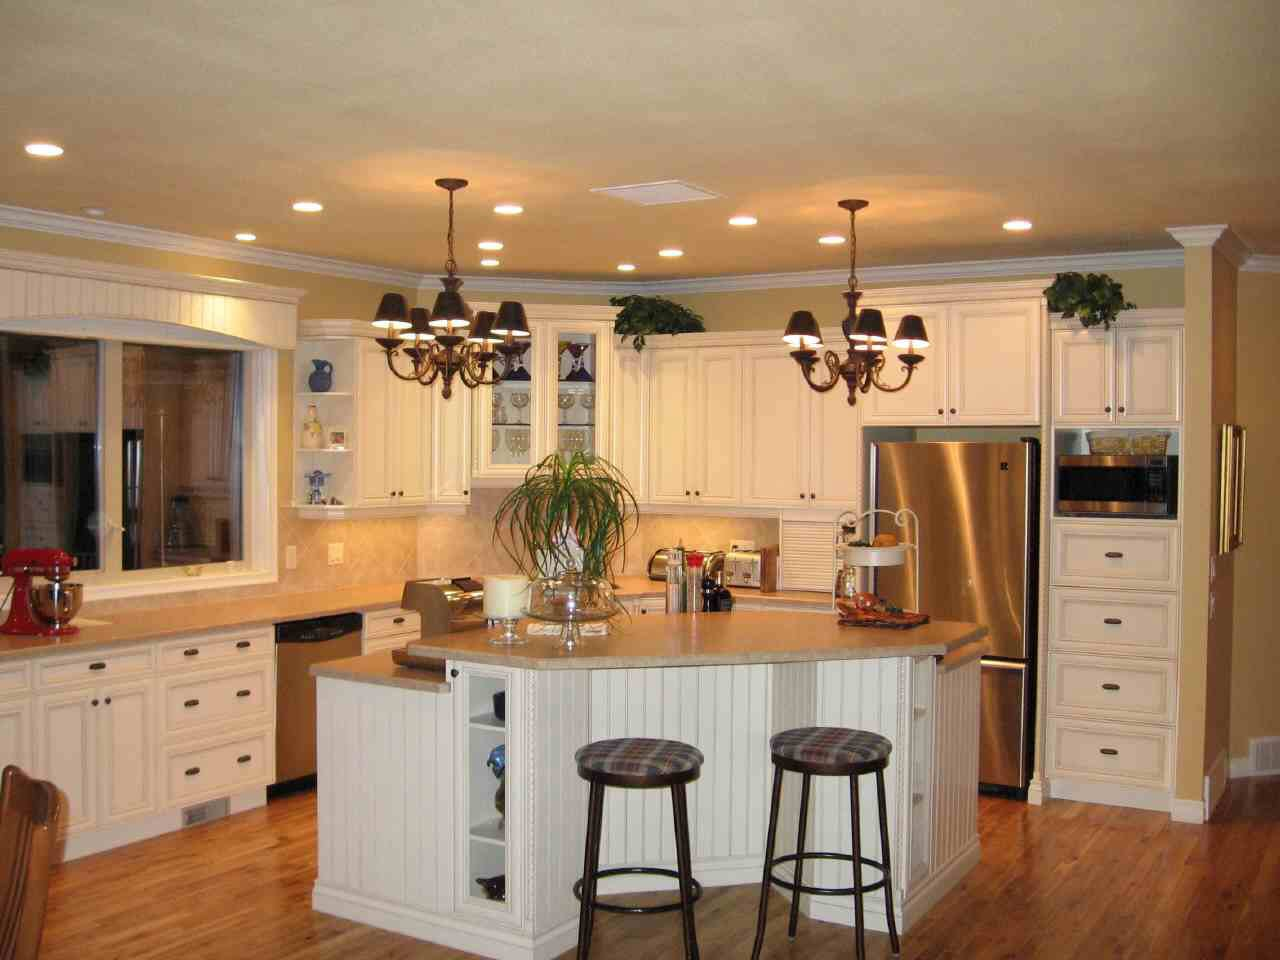 Excellent Kitchen Island Design Ideas for Small Kitchens 1280 x 960 · 109 kB · jpeg